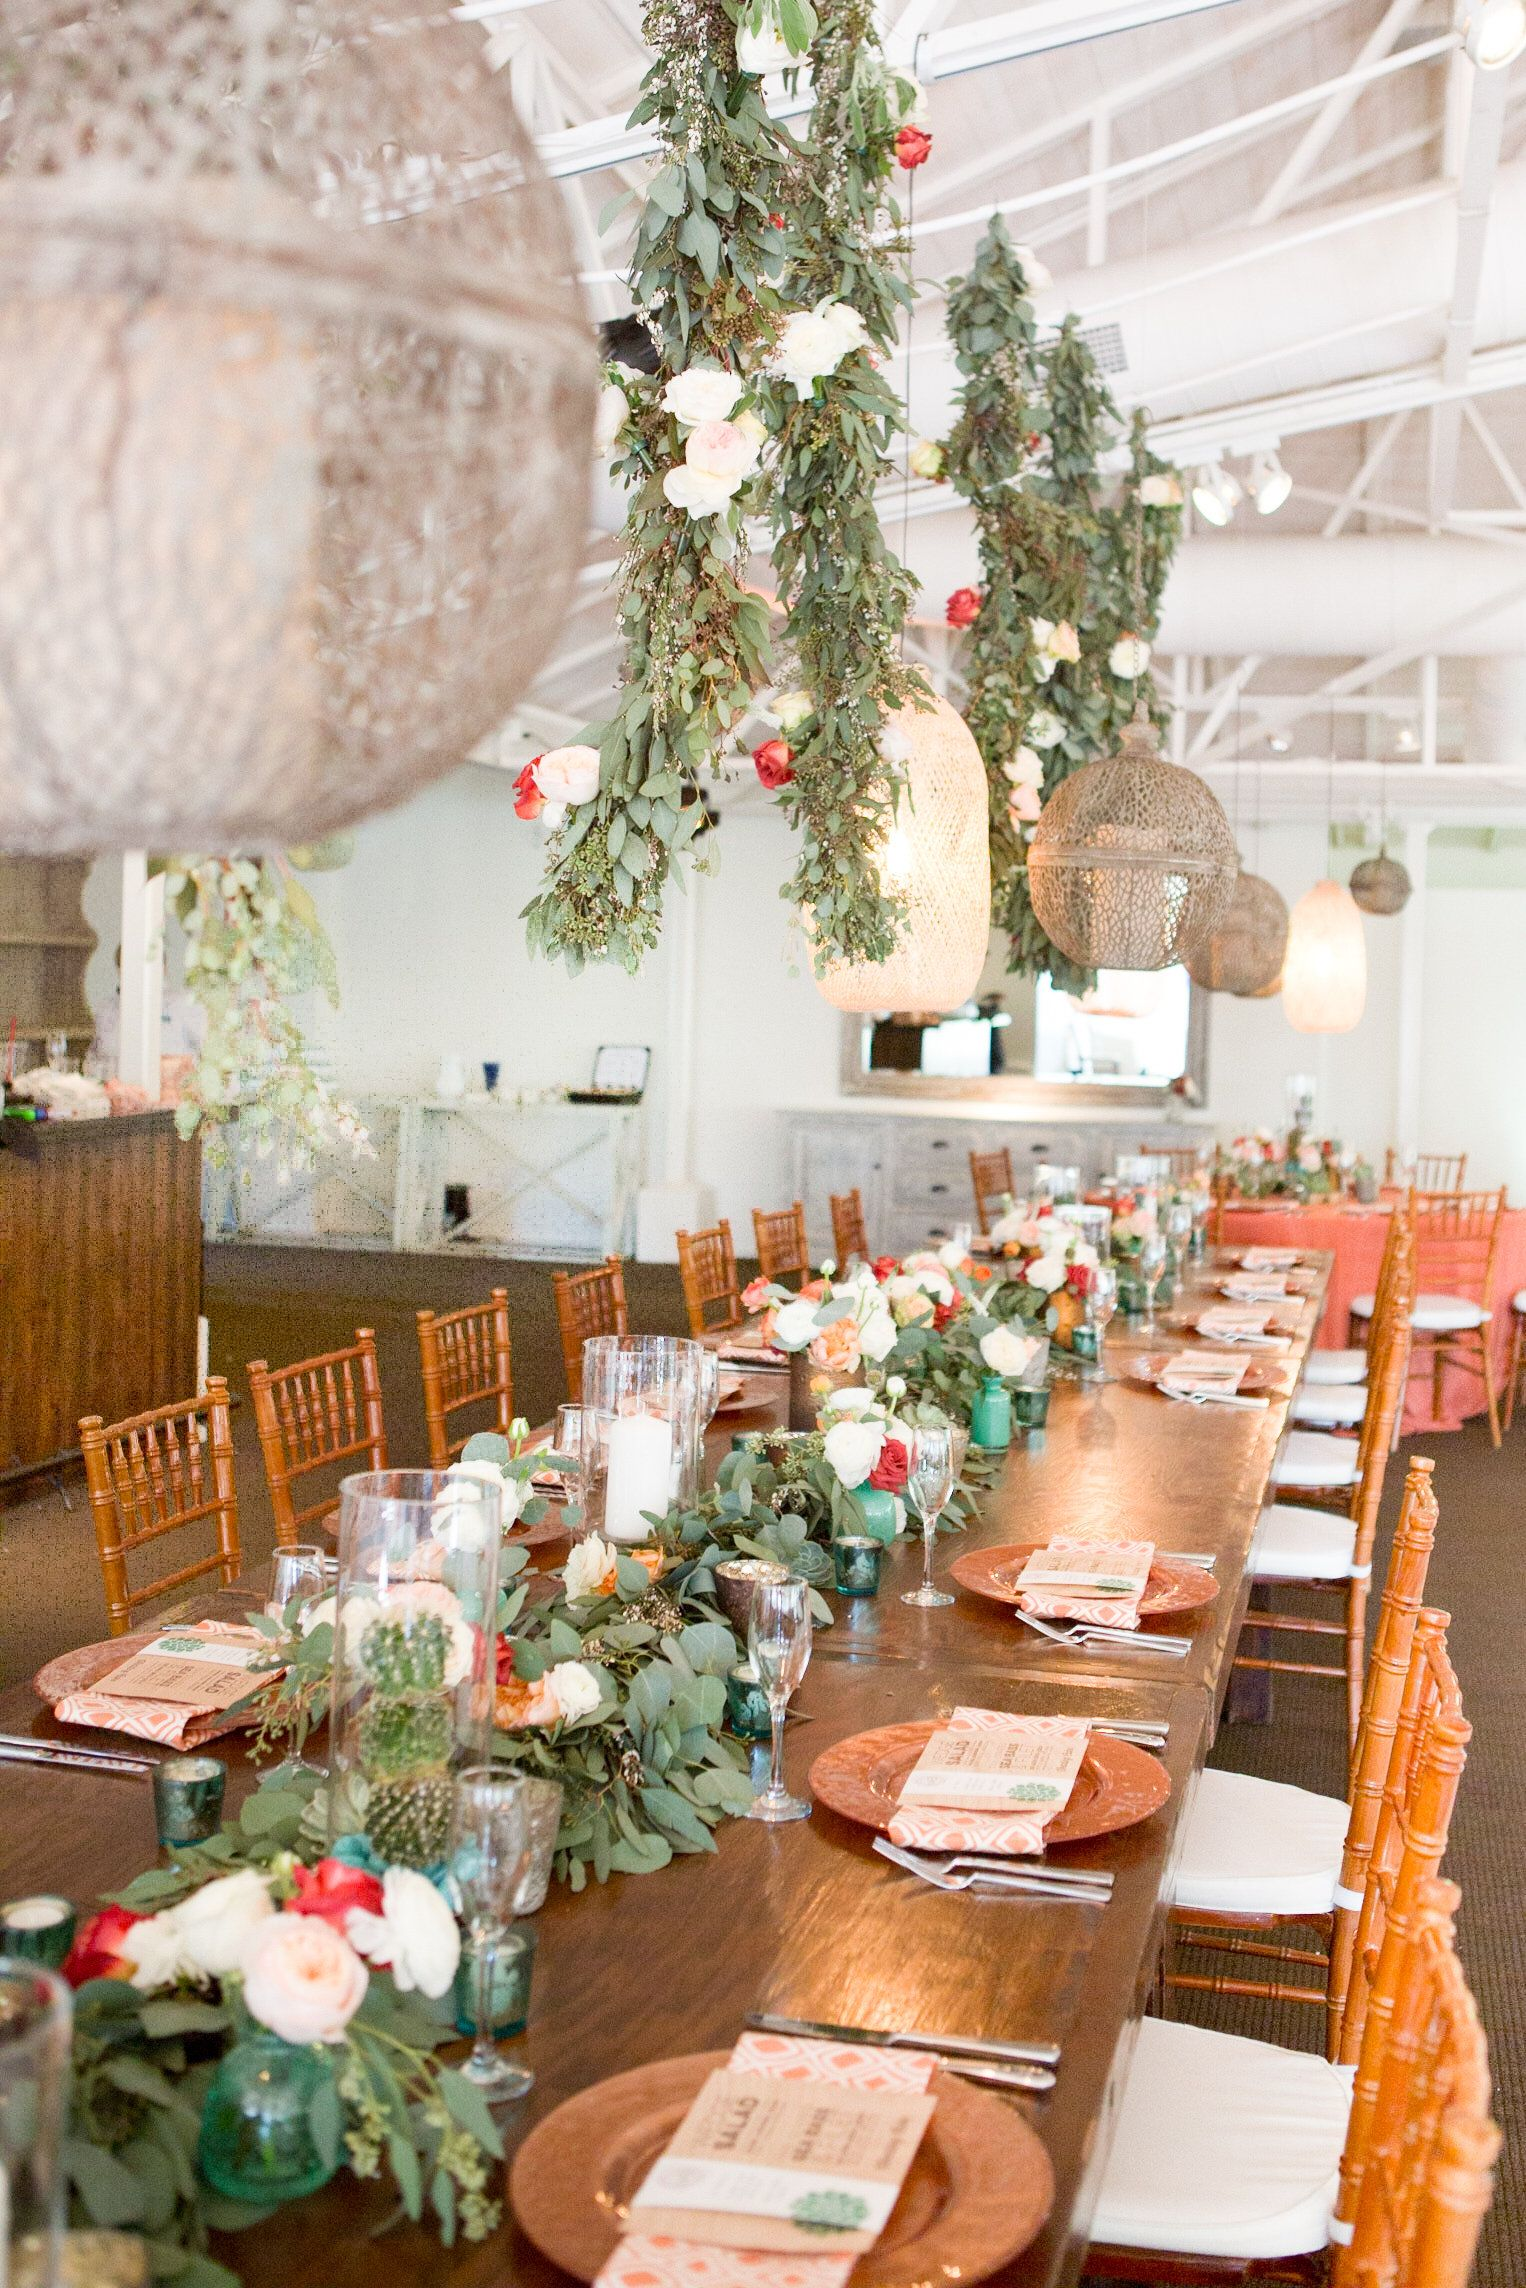 Meghan bens el chorro wedding hanging flower arrangements a desert chic wedding reception with hanging florals photo by amy jordan photography reviewsmspy